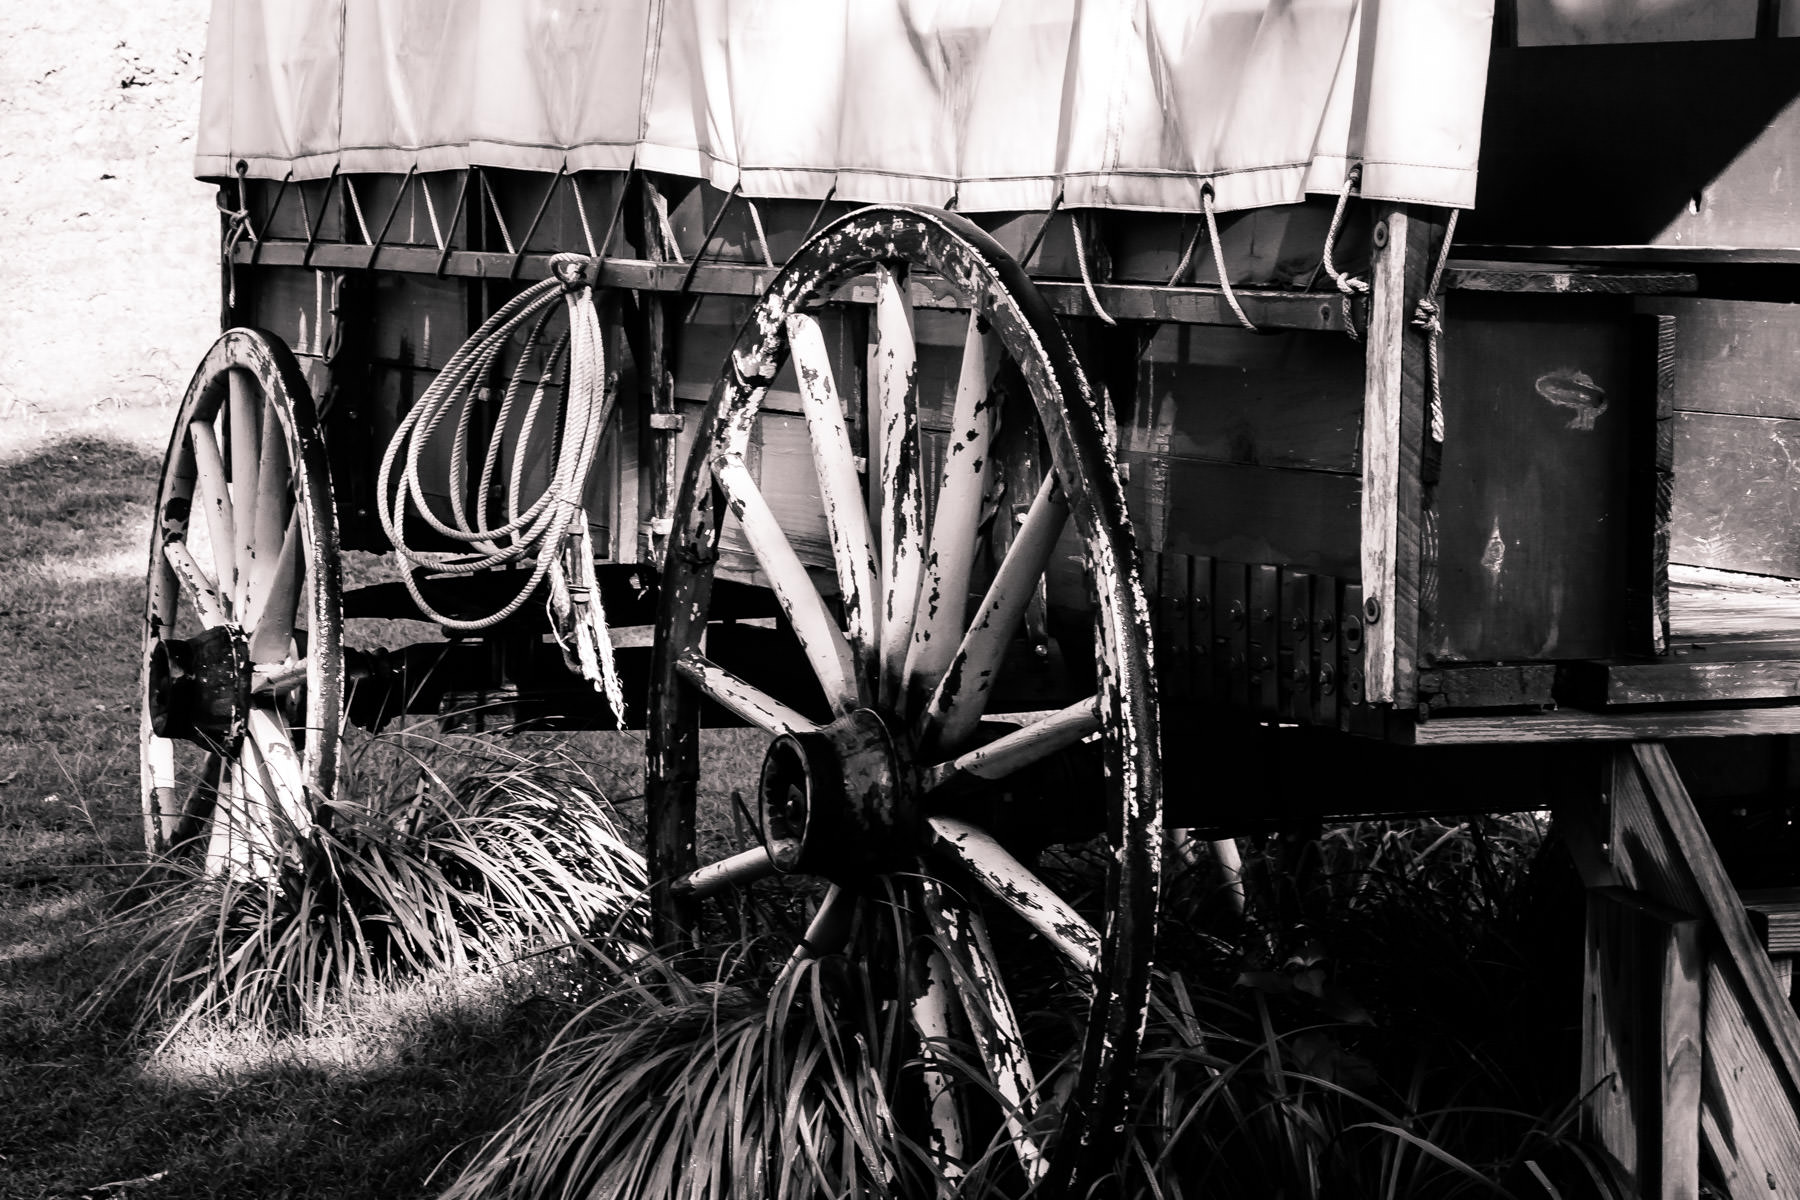 A covered wagon on exhibit at the Dallas Arboretum.